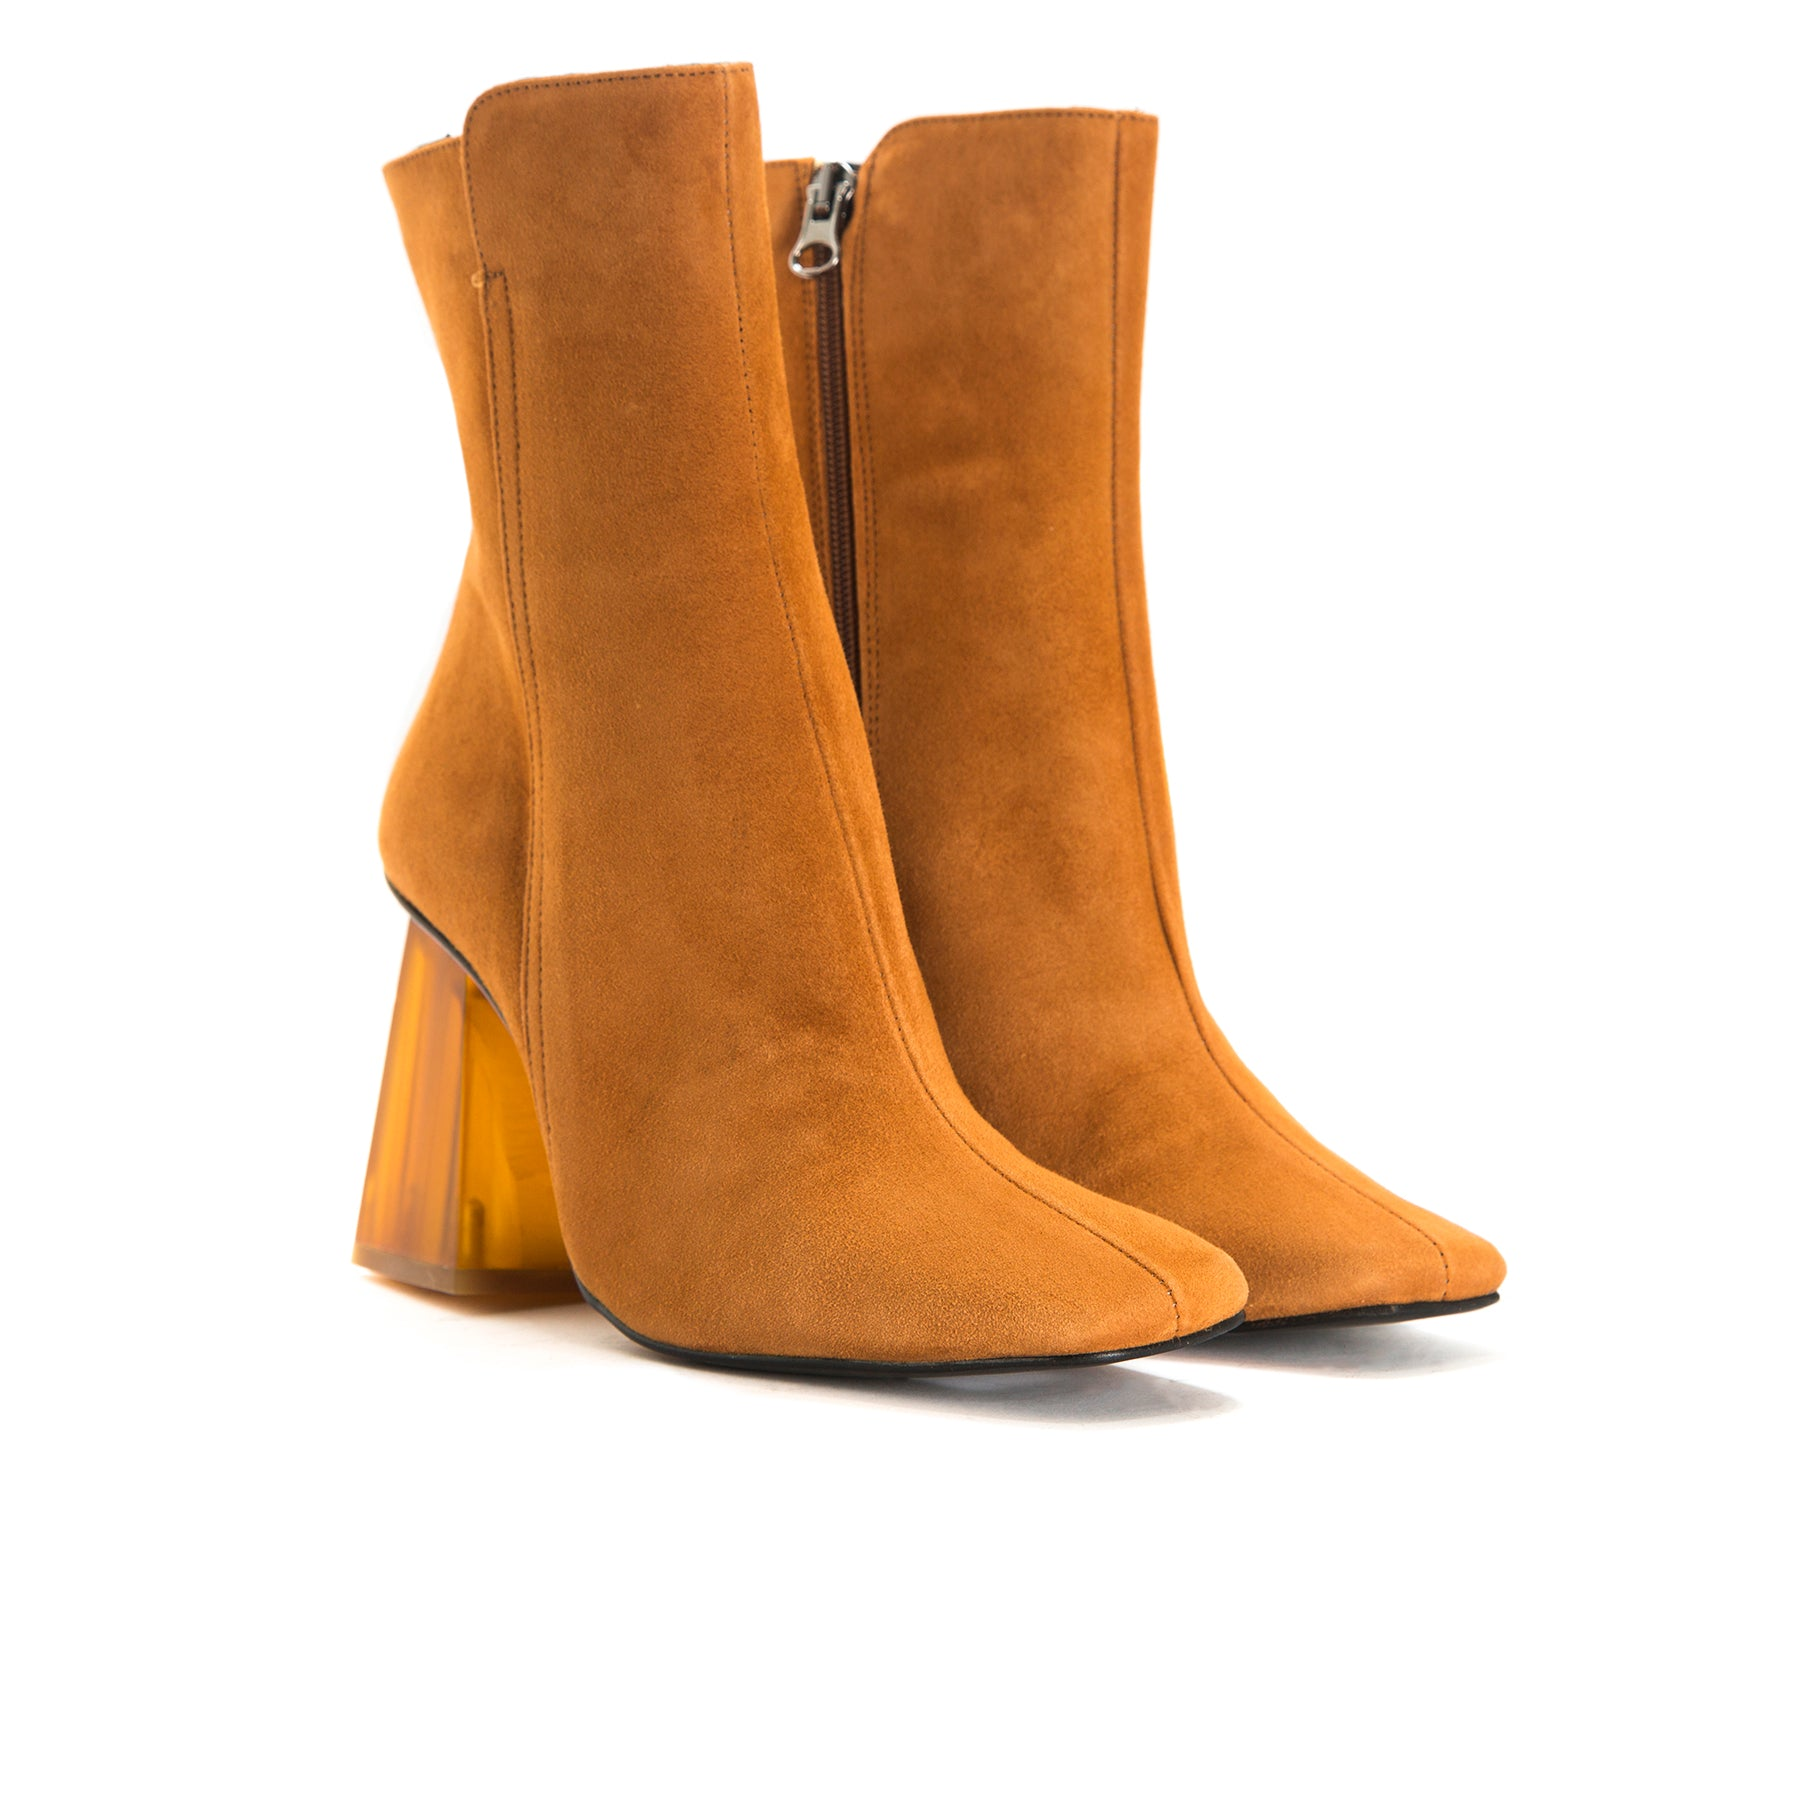 Beaufort Tan Suede Ankle Boots